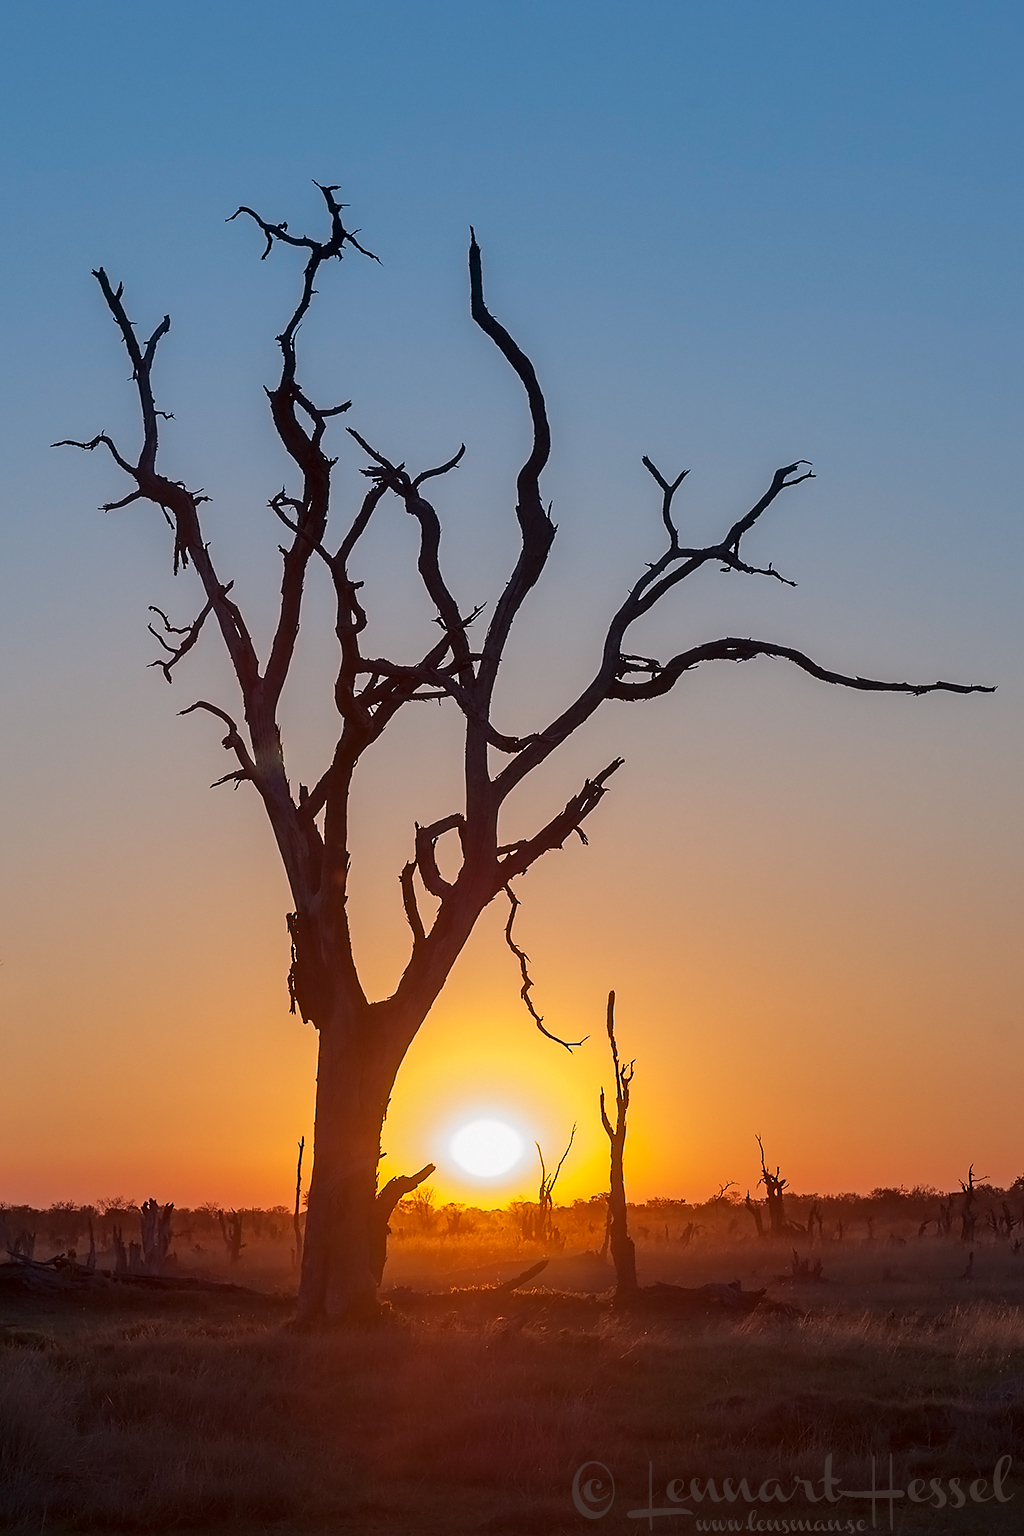 Sunset on the savannah in Moremi Game Reserve, Botswana